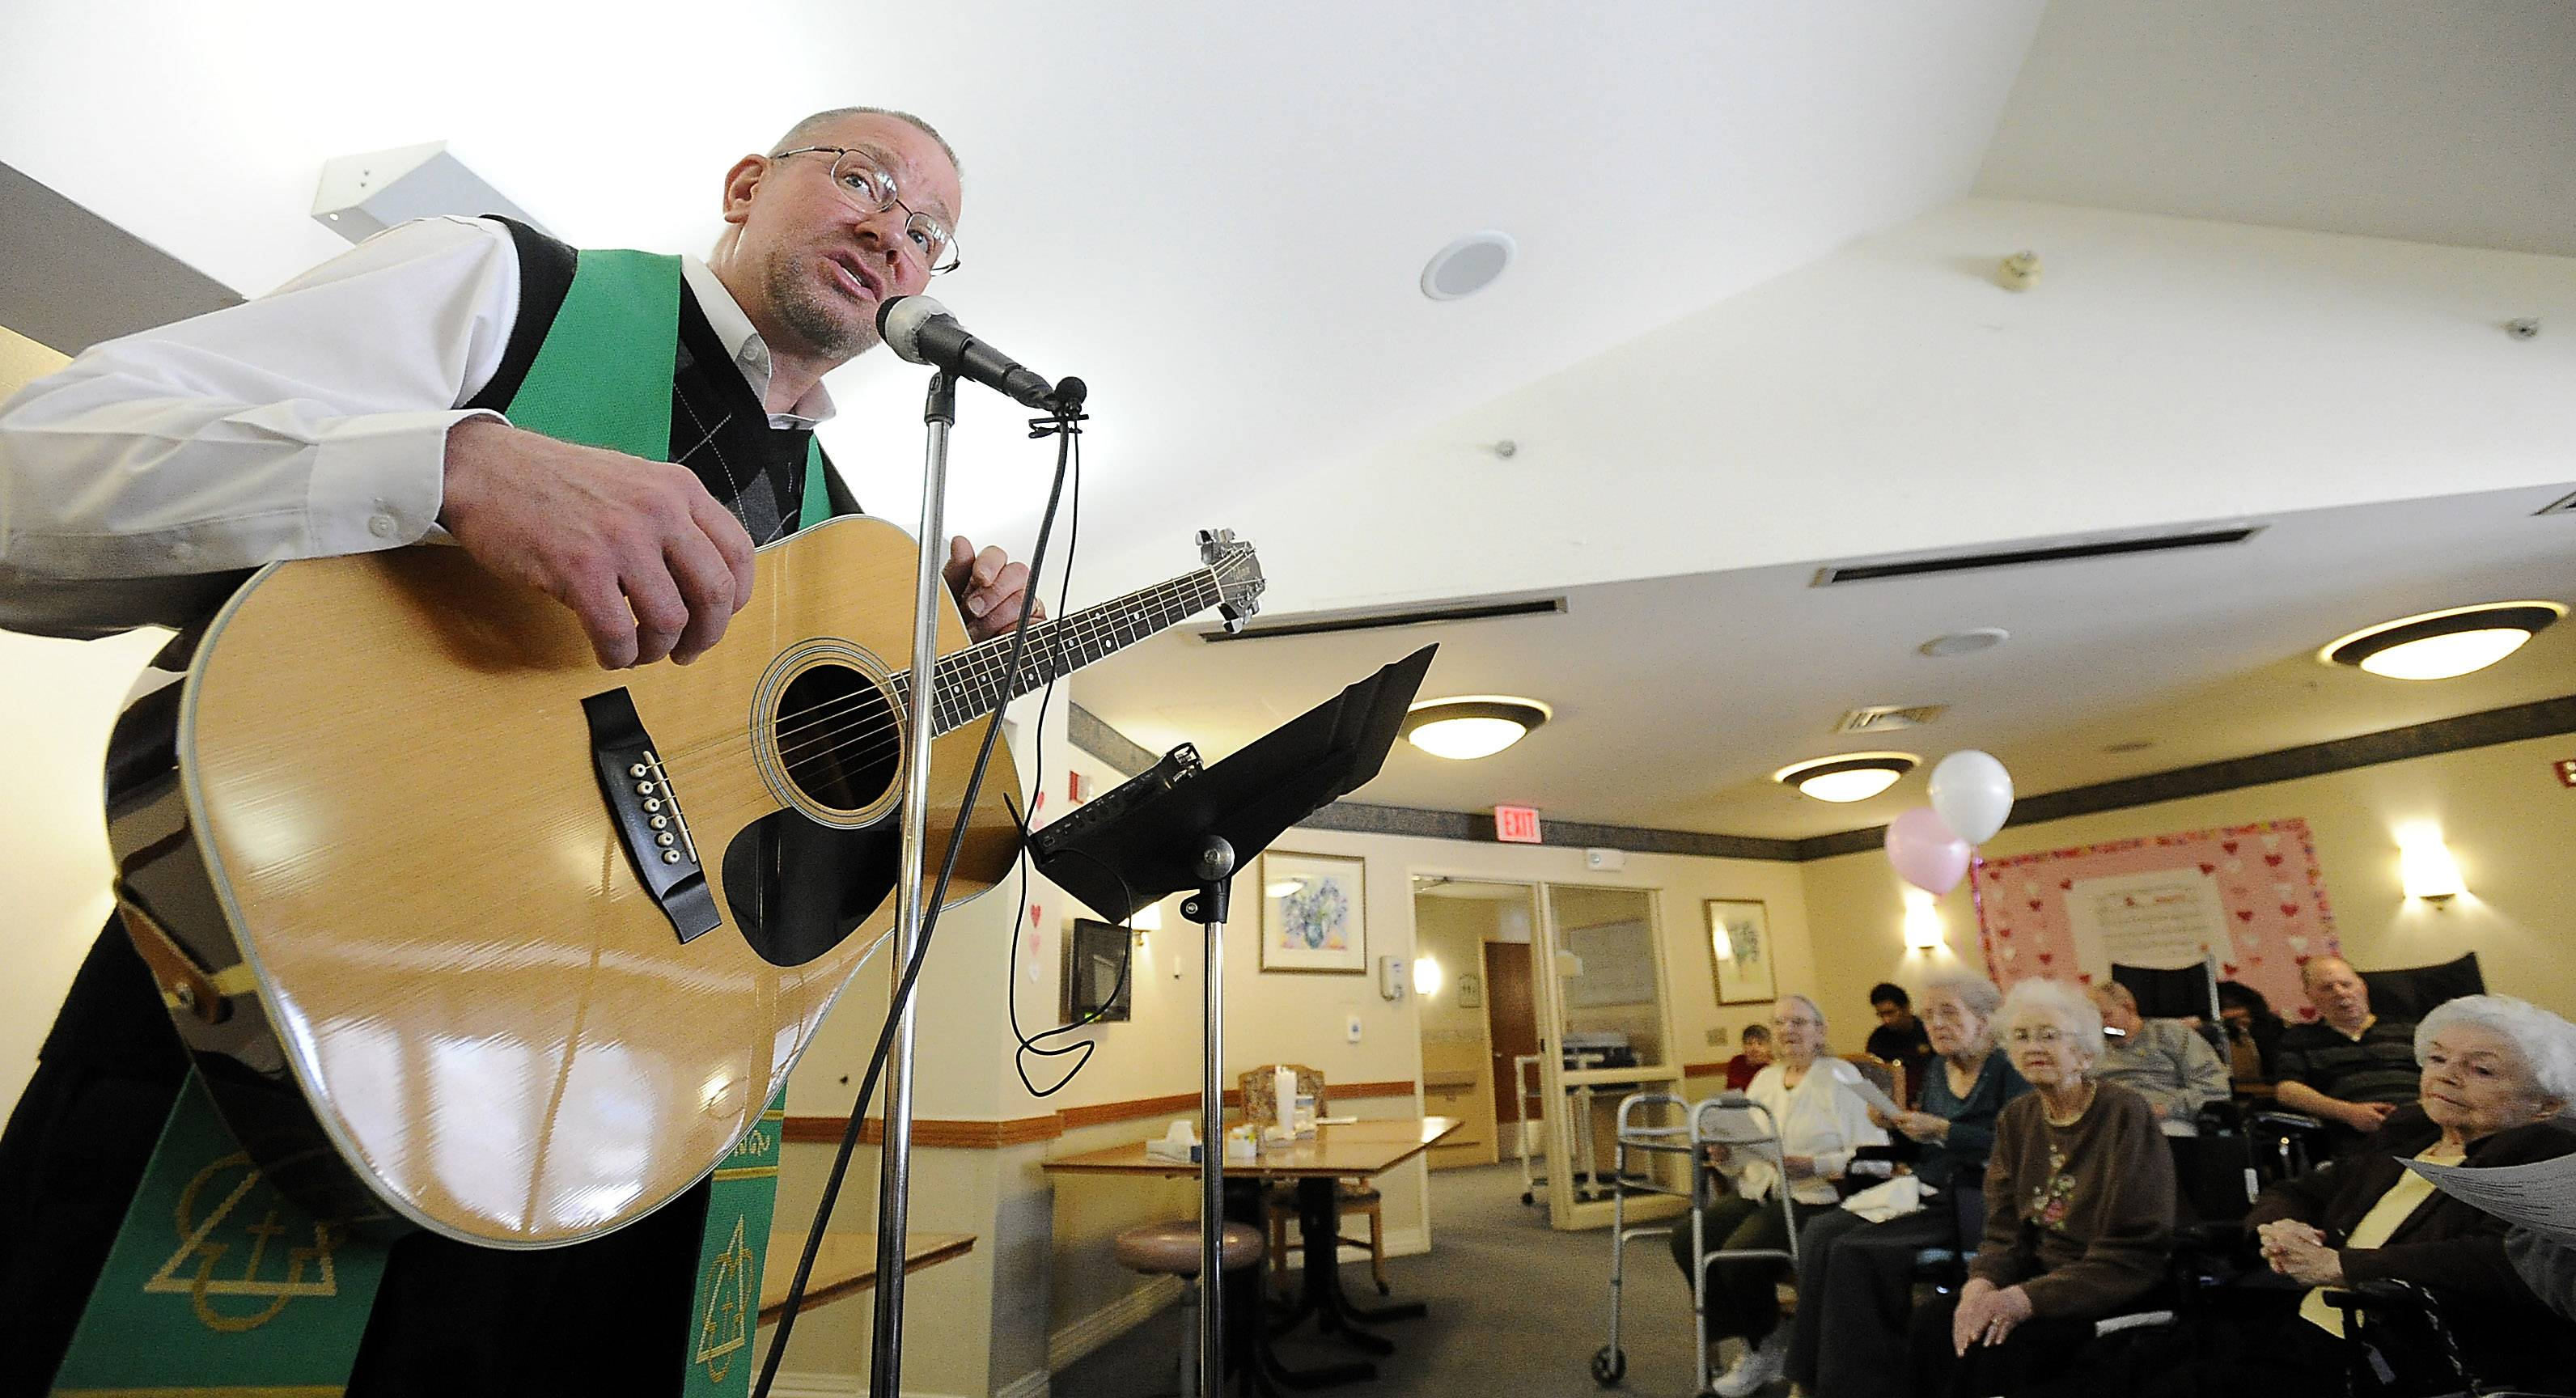 Moving picture: Mount Prospect minister inspires with music